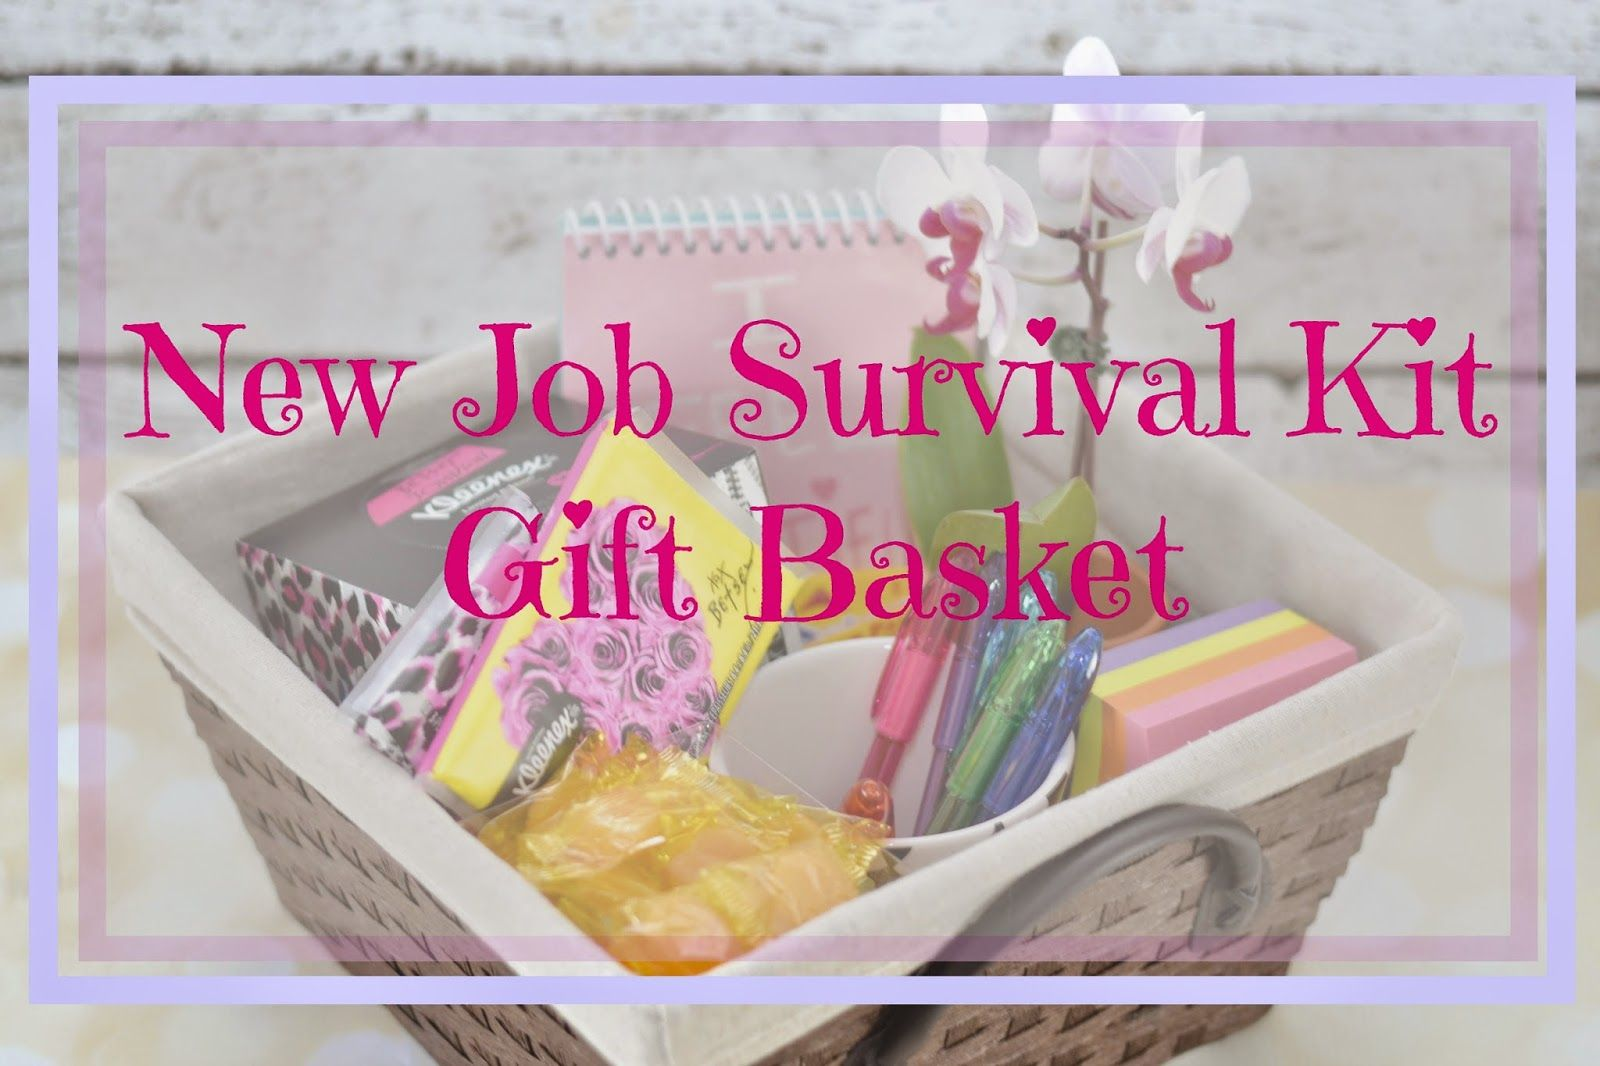 marvellous inspiration gifts for new homeowners. KLEENEX  Betsey Styled Single Packs Wallet 3 fun Survival Kit GiftsNew New Job Gift Basket kit gifts Fun office